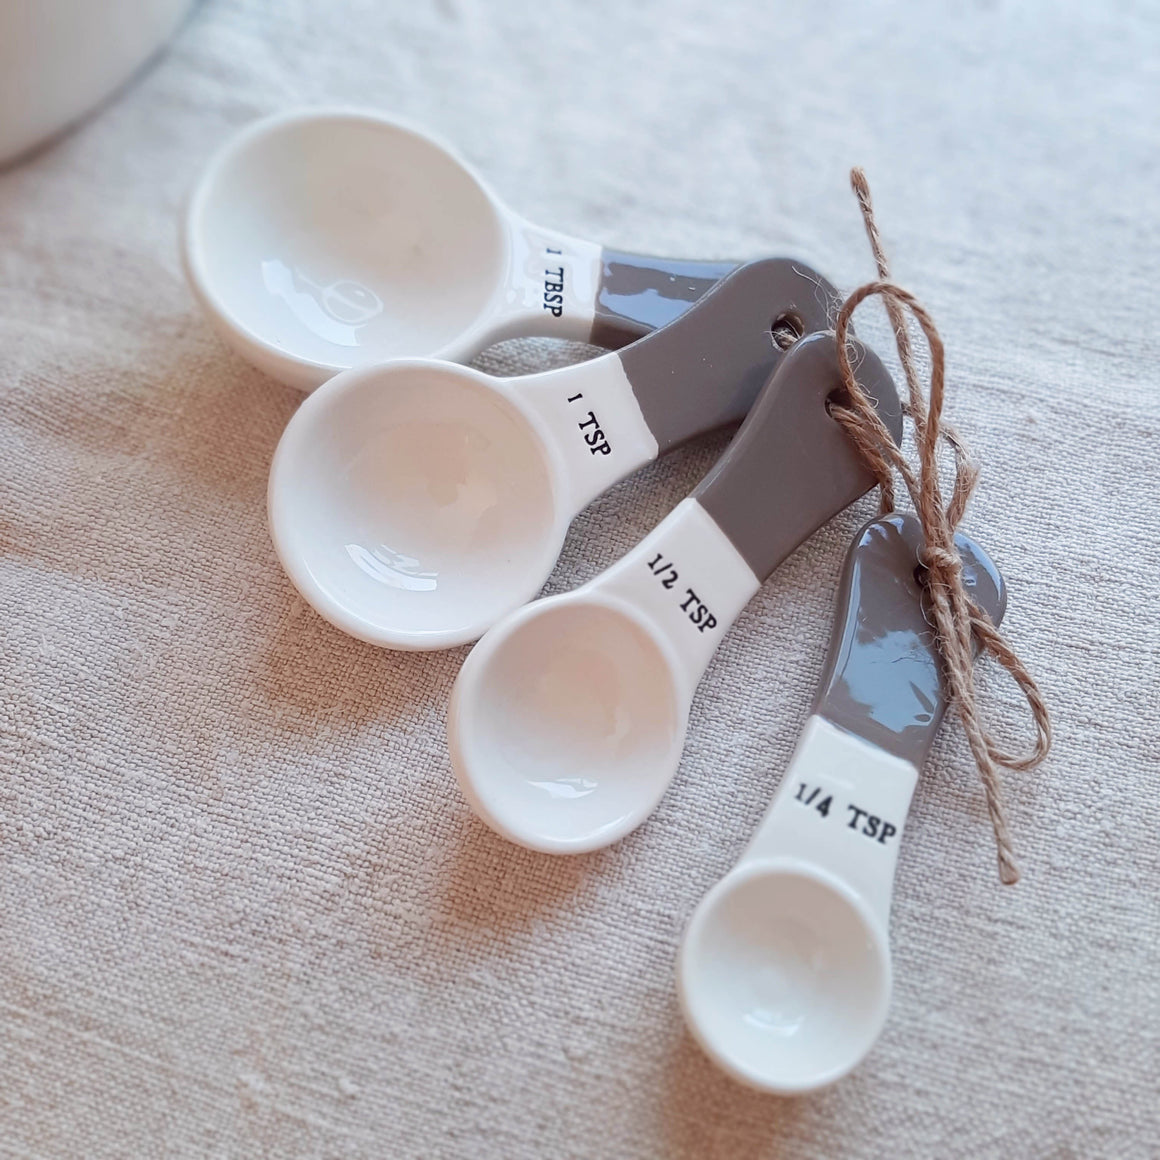 The perfect companion for any farmhouse chef, this set of four Ceramic Measuring Spoons features a duo tone finish, with creamy white on top and a rustic mauve detail along the bottom edge. Each spoon has the measurment embossed on the side. Set of four includes 1 TBS, 1 TSP, 1/2 TSP,  1/4 TSP. Microwave, dishwasher and oven safe.